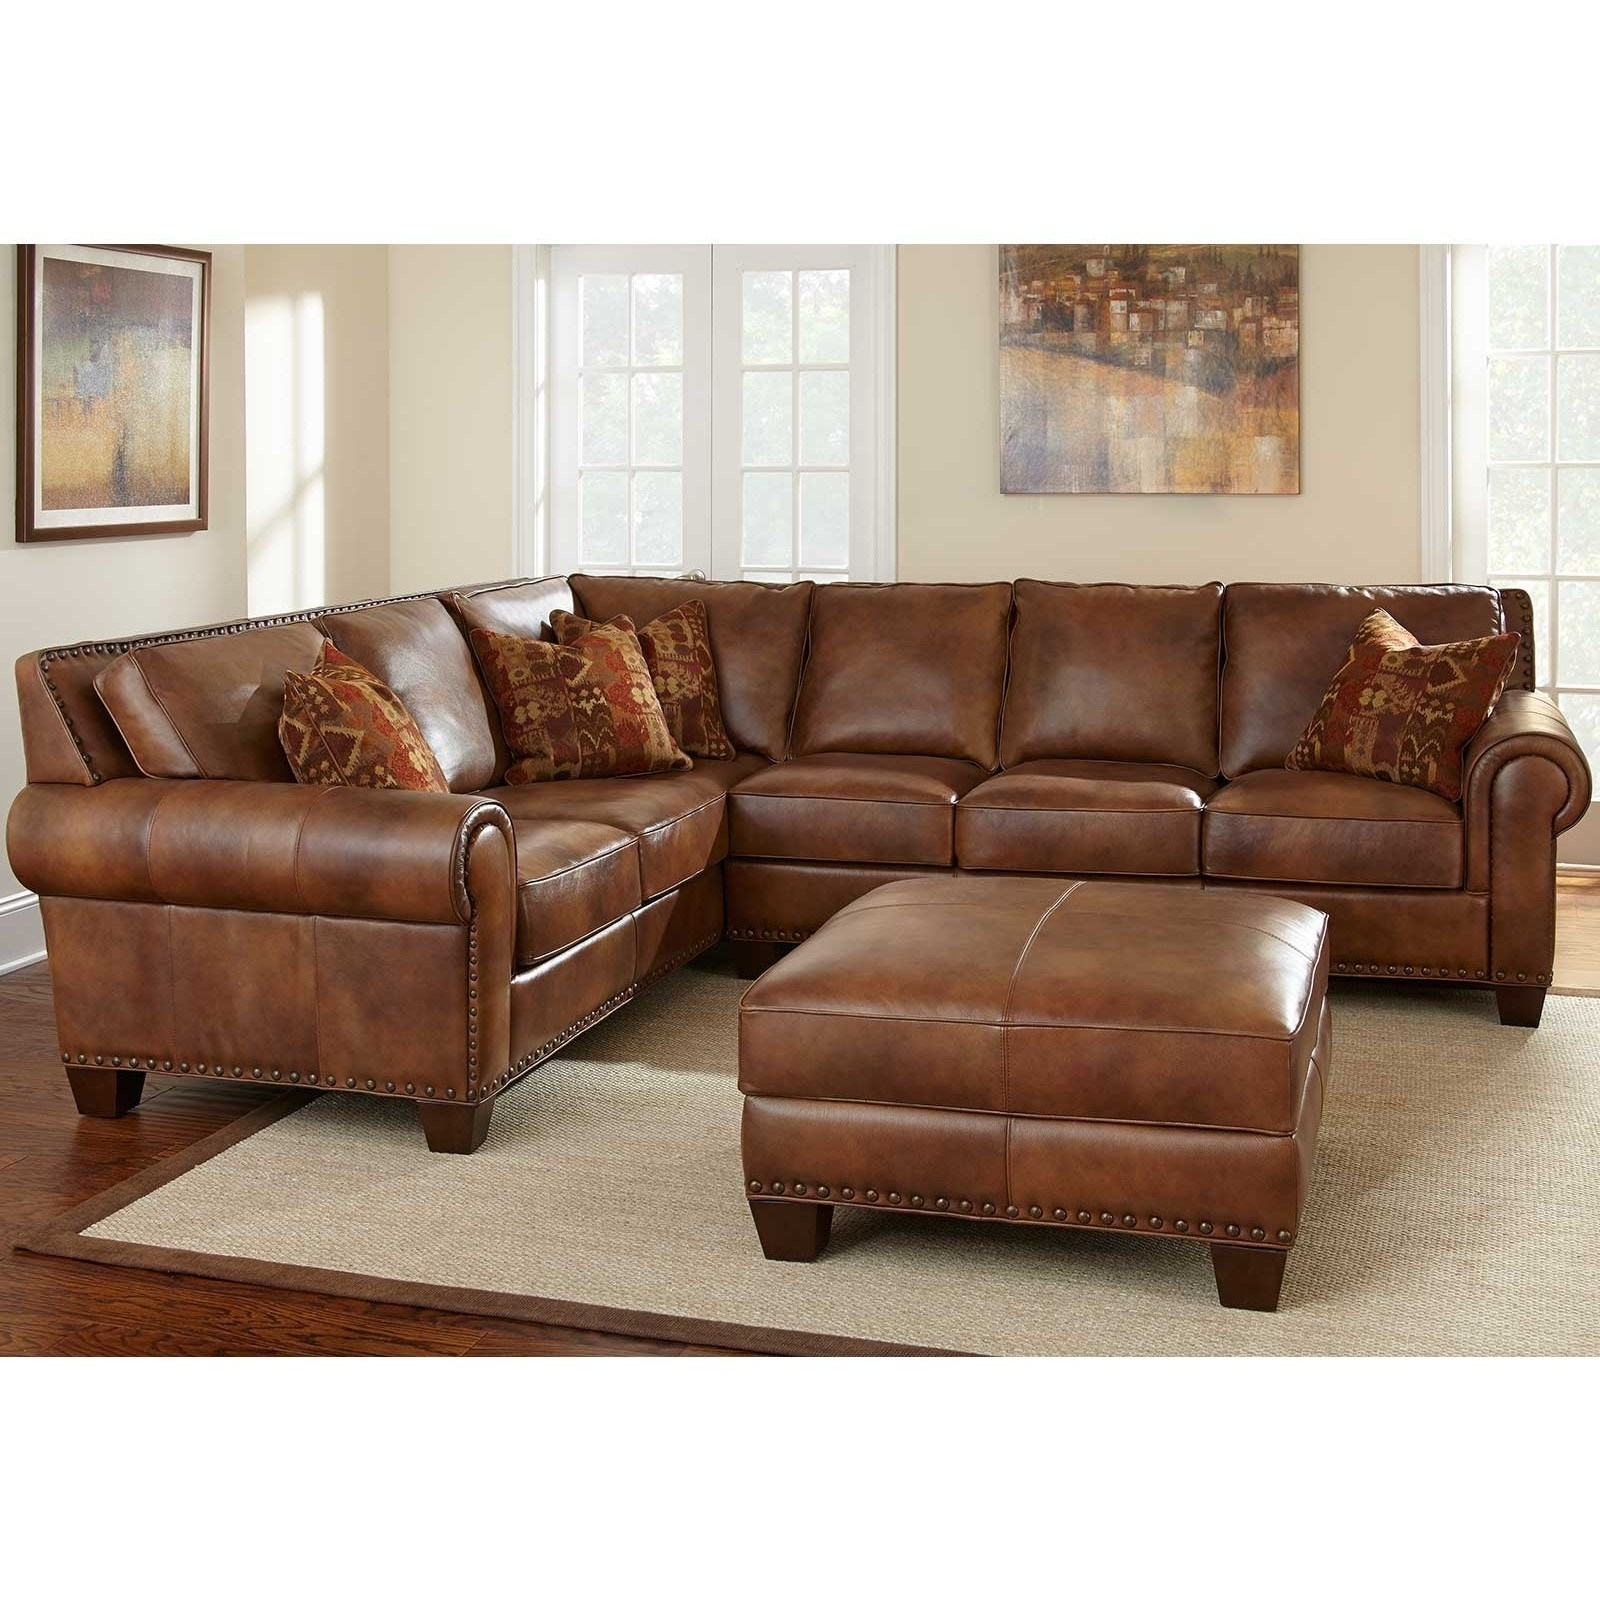 Well Known Sectional Sofa Sales – Hotelsbacau Intended For North Carolina Sectional Sofas (View 19 of 20)